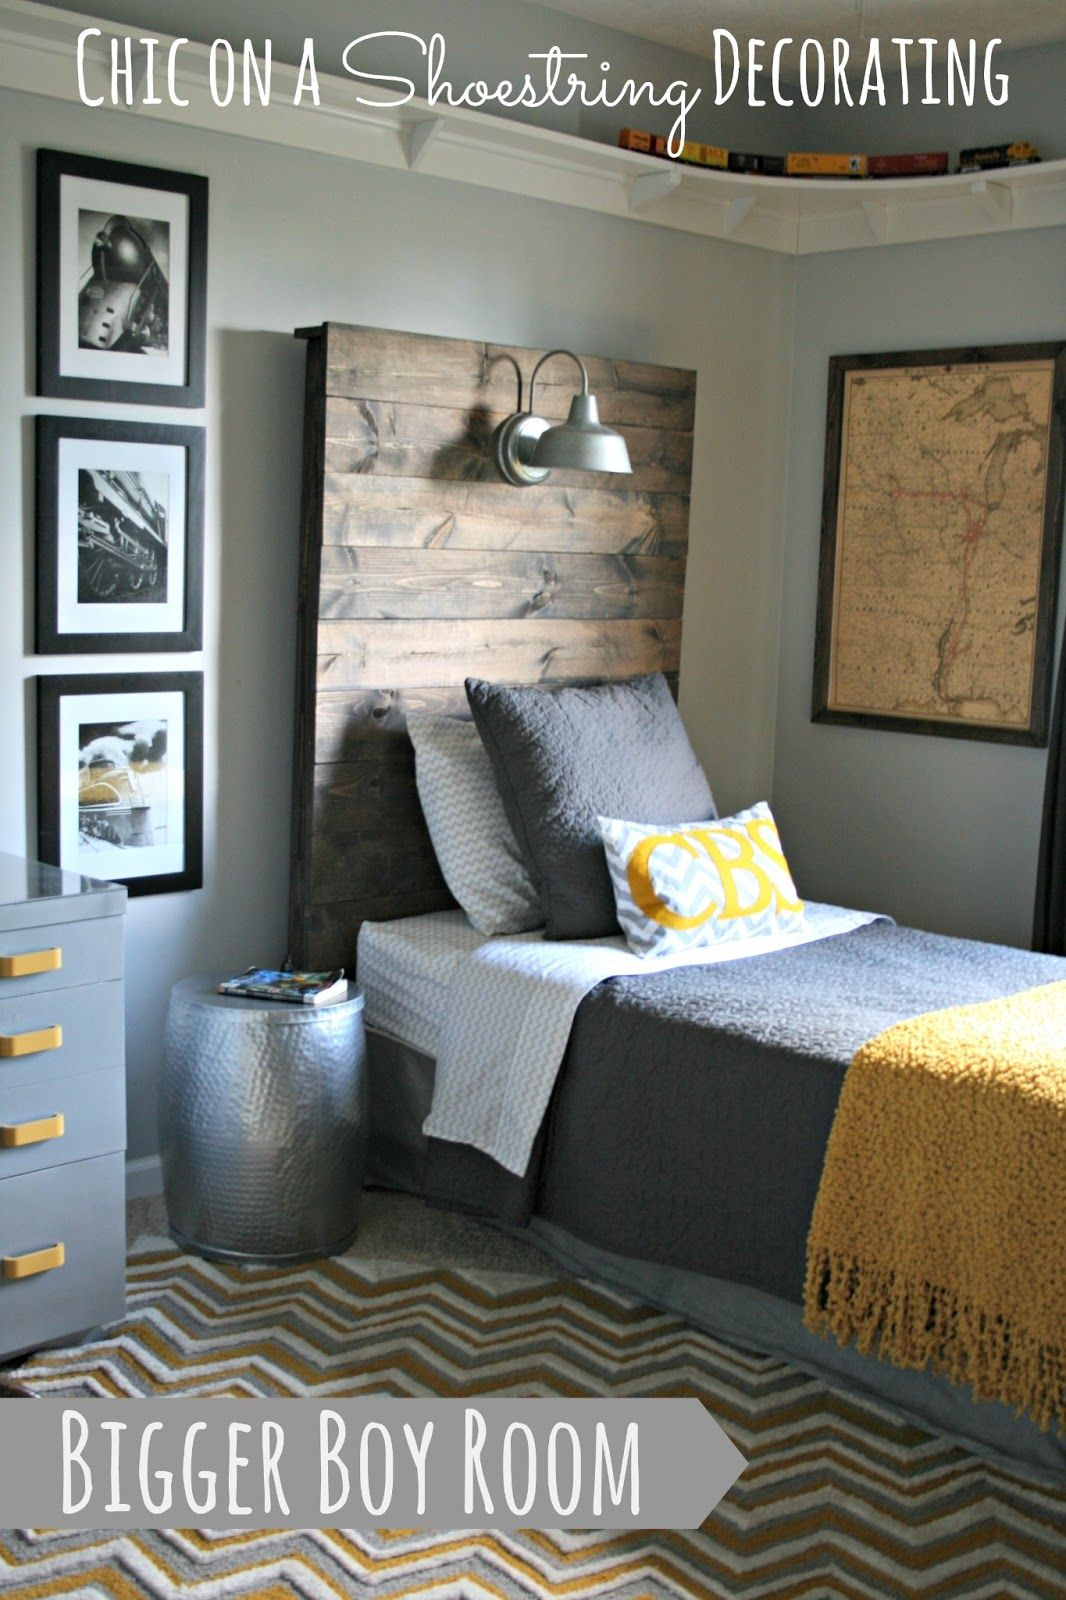 12 Year Old Boys Bedroom Ideas With Single Bed In Natural Wooden Headboard And Some Wall Picture Frames Kids Bedroom Gal Boys Bedrooms Boy Room Big Boy Room